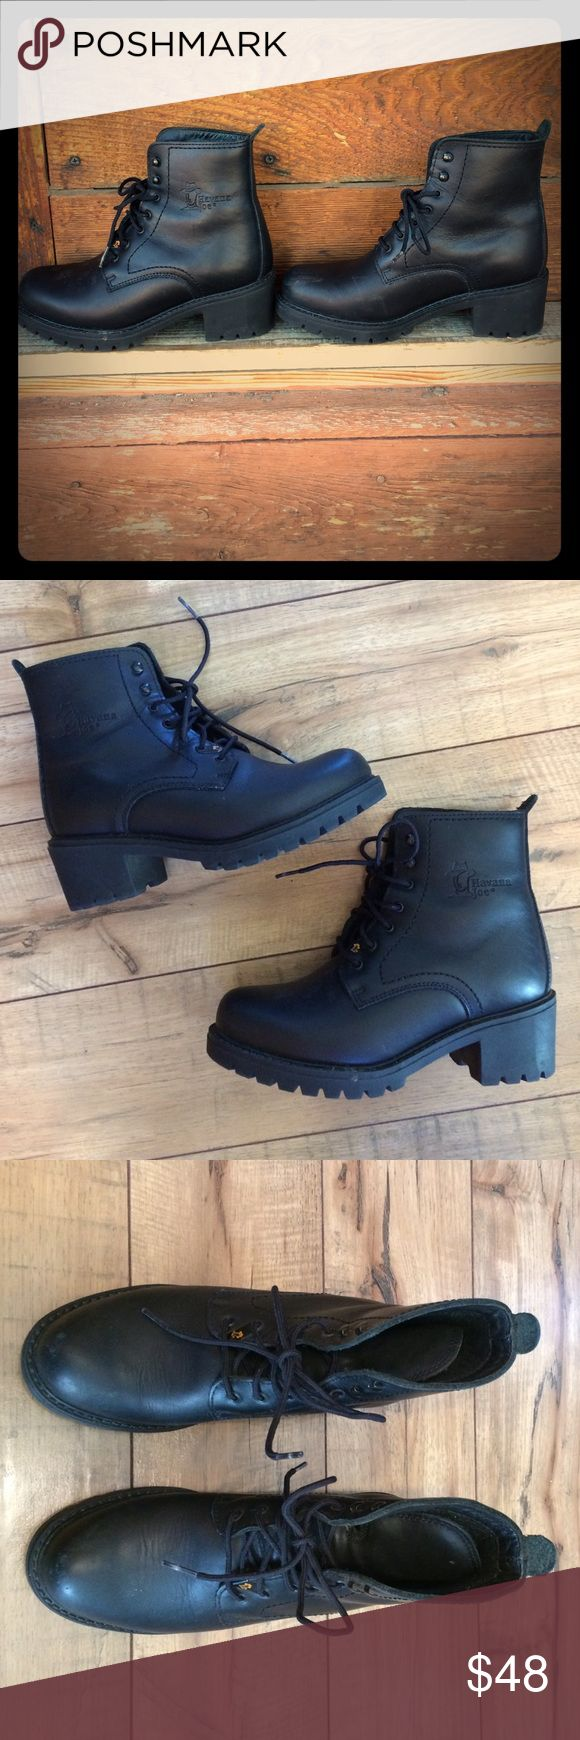 Havana Joe Lace up boots Only worn a couple times. Leather upper and lining. Made in Spain. 2 inch heel. Havana Joe Shoes Lace Up Boots